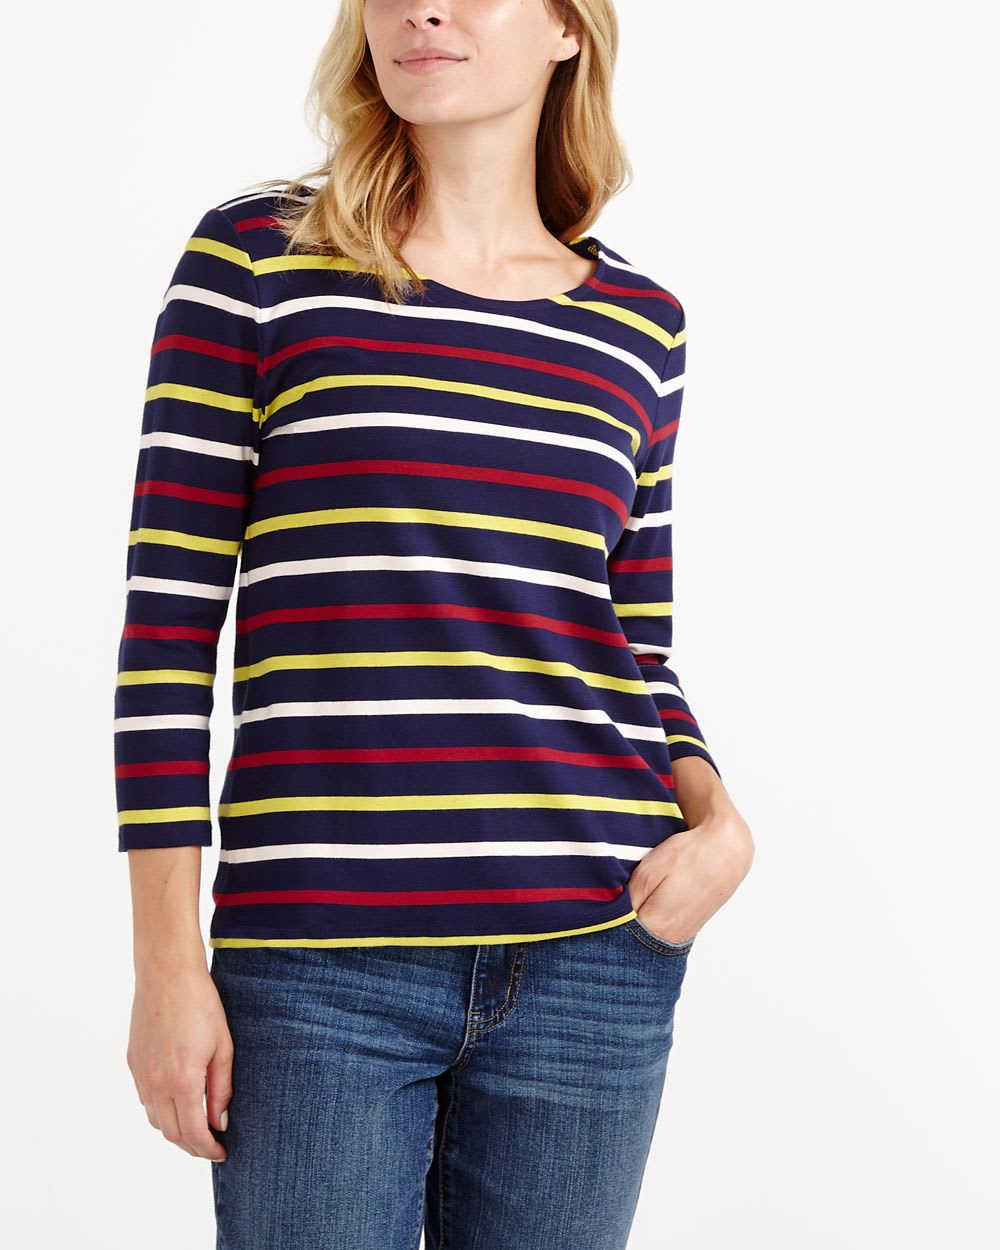 ¾ Sleeve Striped Top